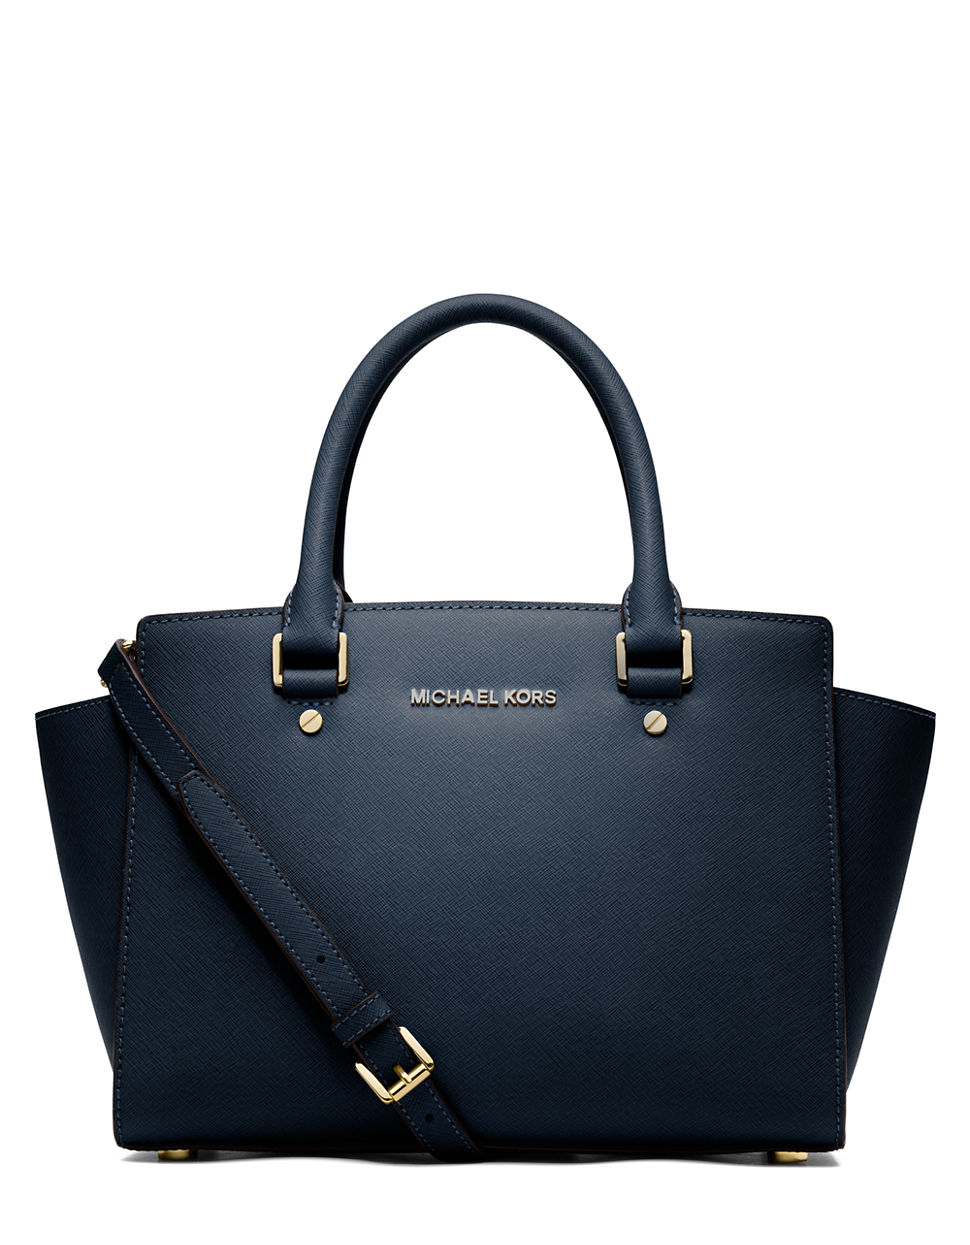 Bolsa Michael Kors Palacio De Hierro : Michael kors selma leather medium zip satchel in